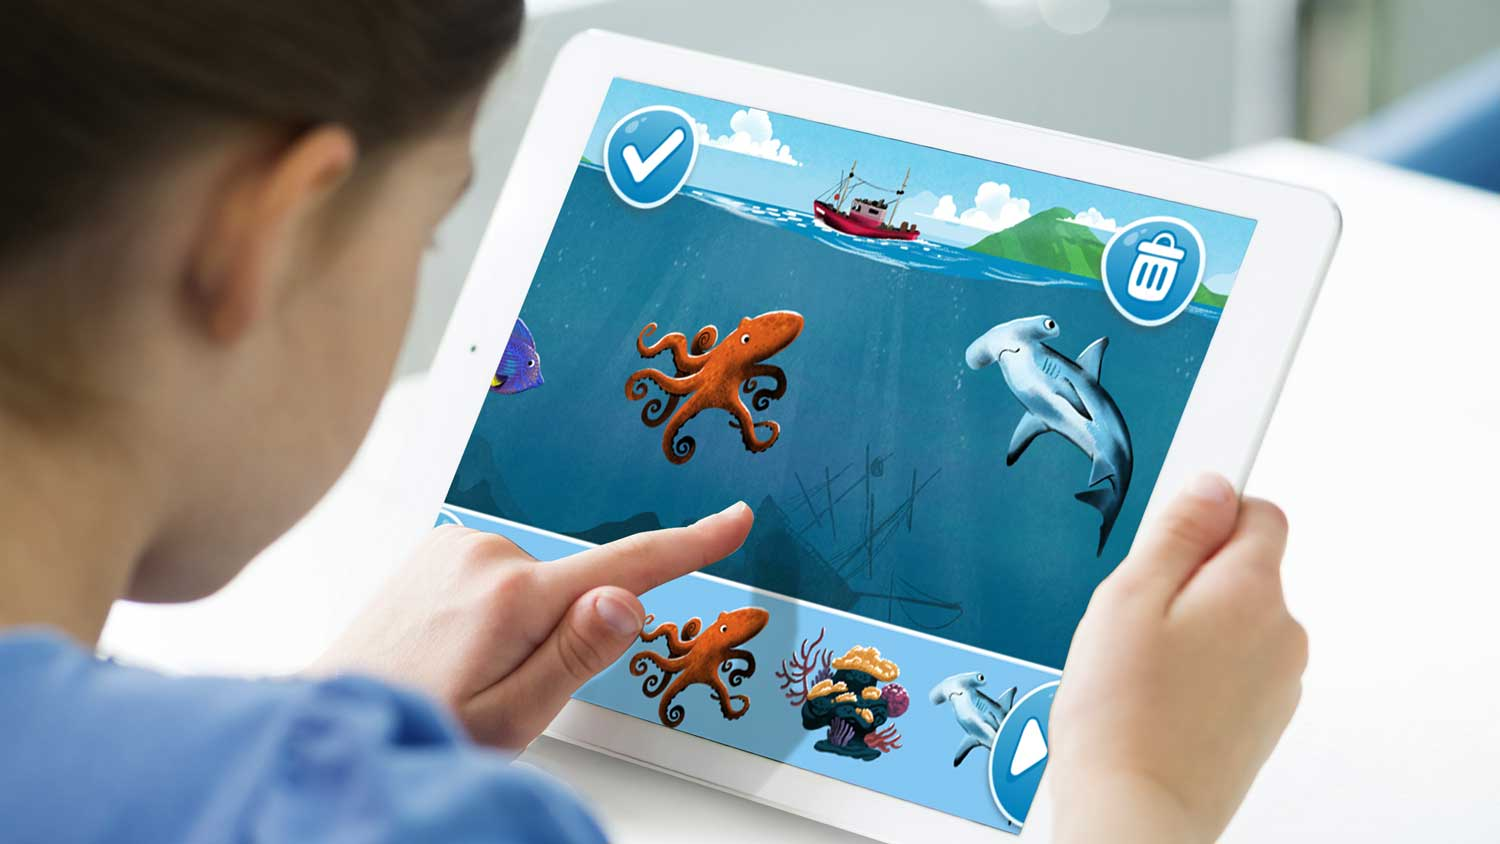 MAKE YOUR OWN STORY can be played on iPad, iPhone, Android and the Web.